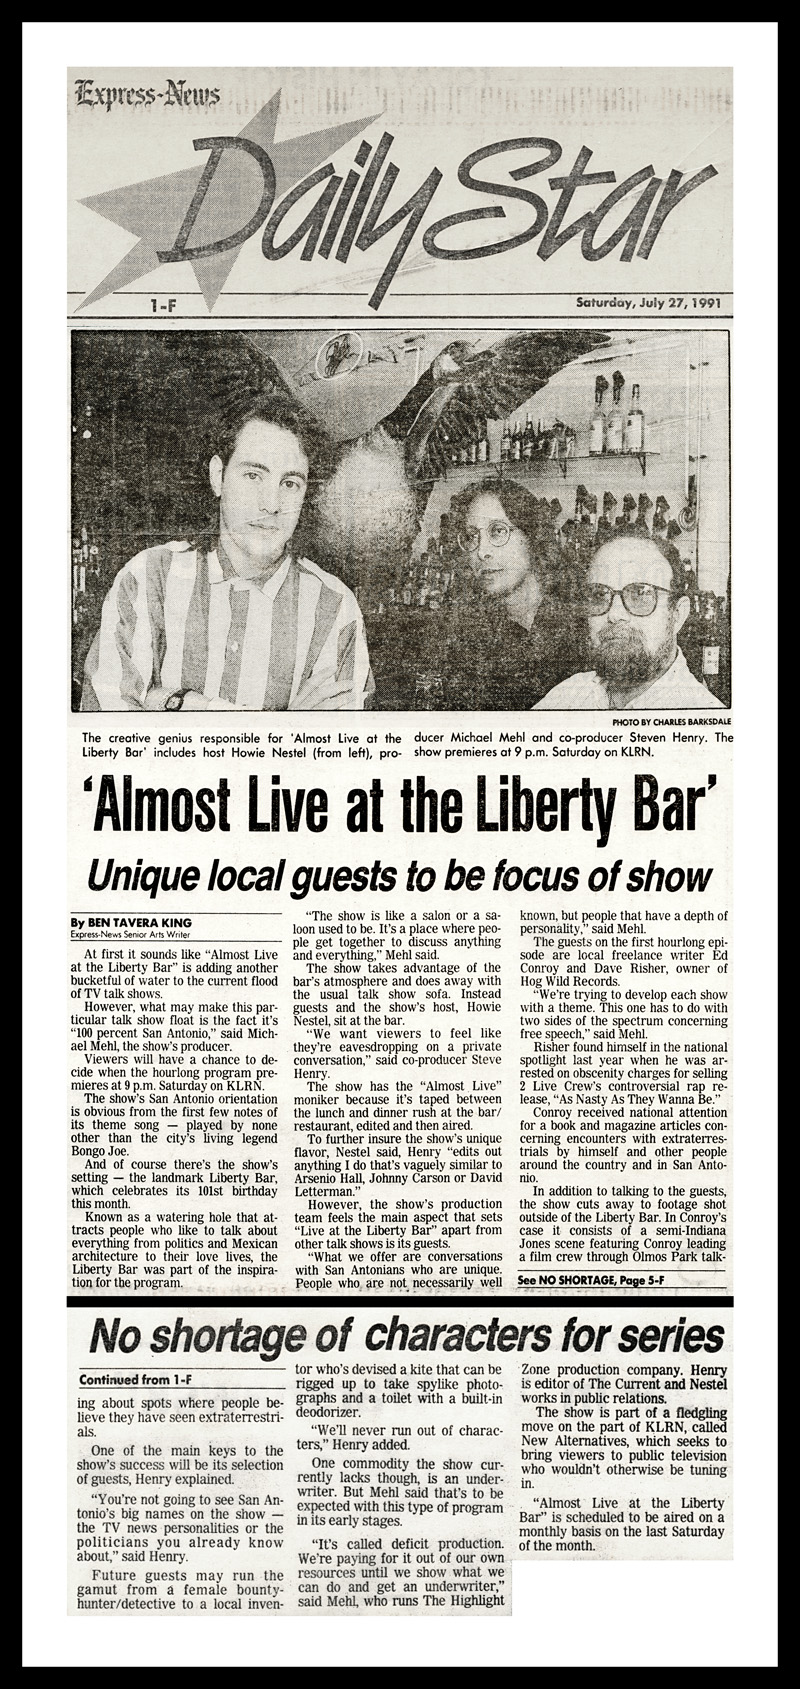 1991_Michael-Mehl_San-Antonio-Express-News-Daily-Star_Almost-Live-From-The-Liberty-Bar-TV-Show-On-KLRN-TV